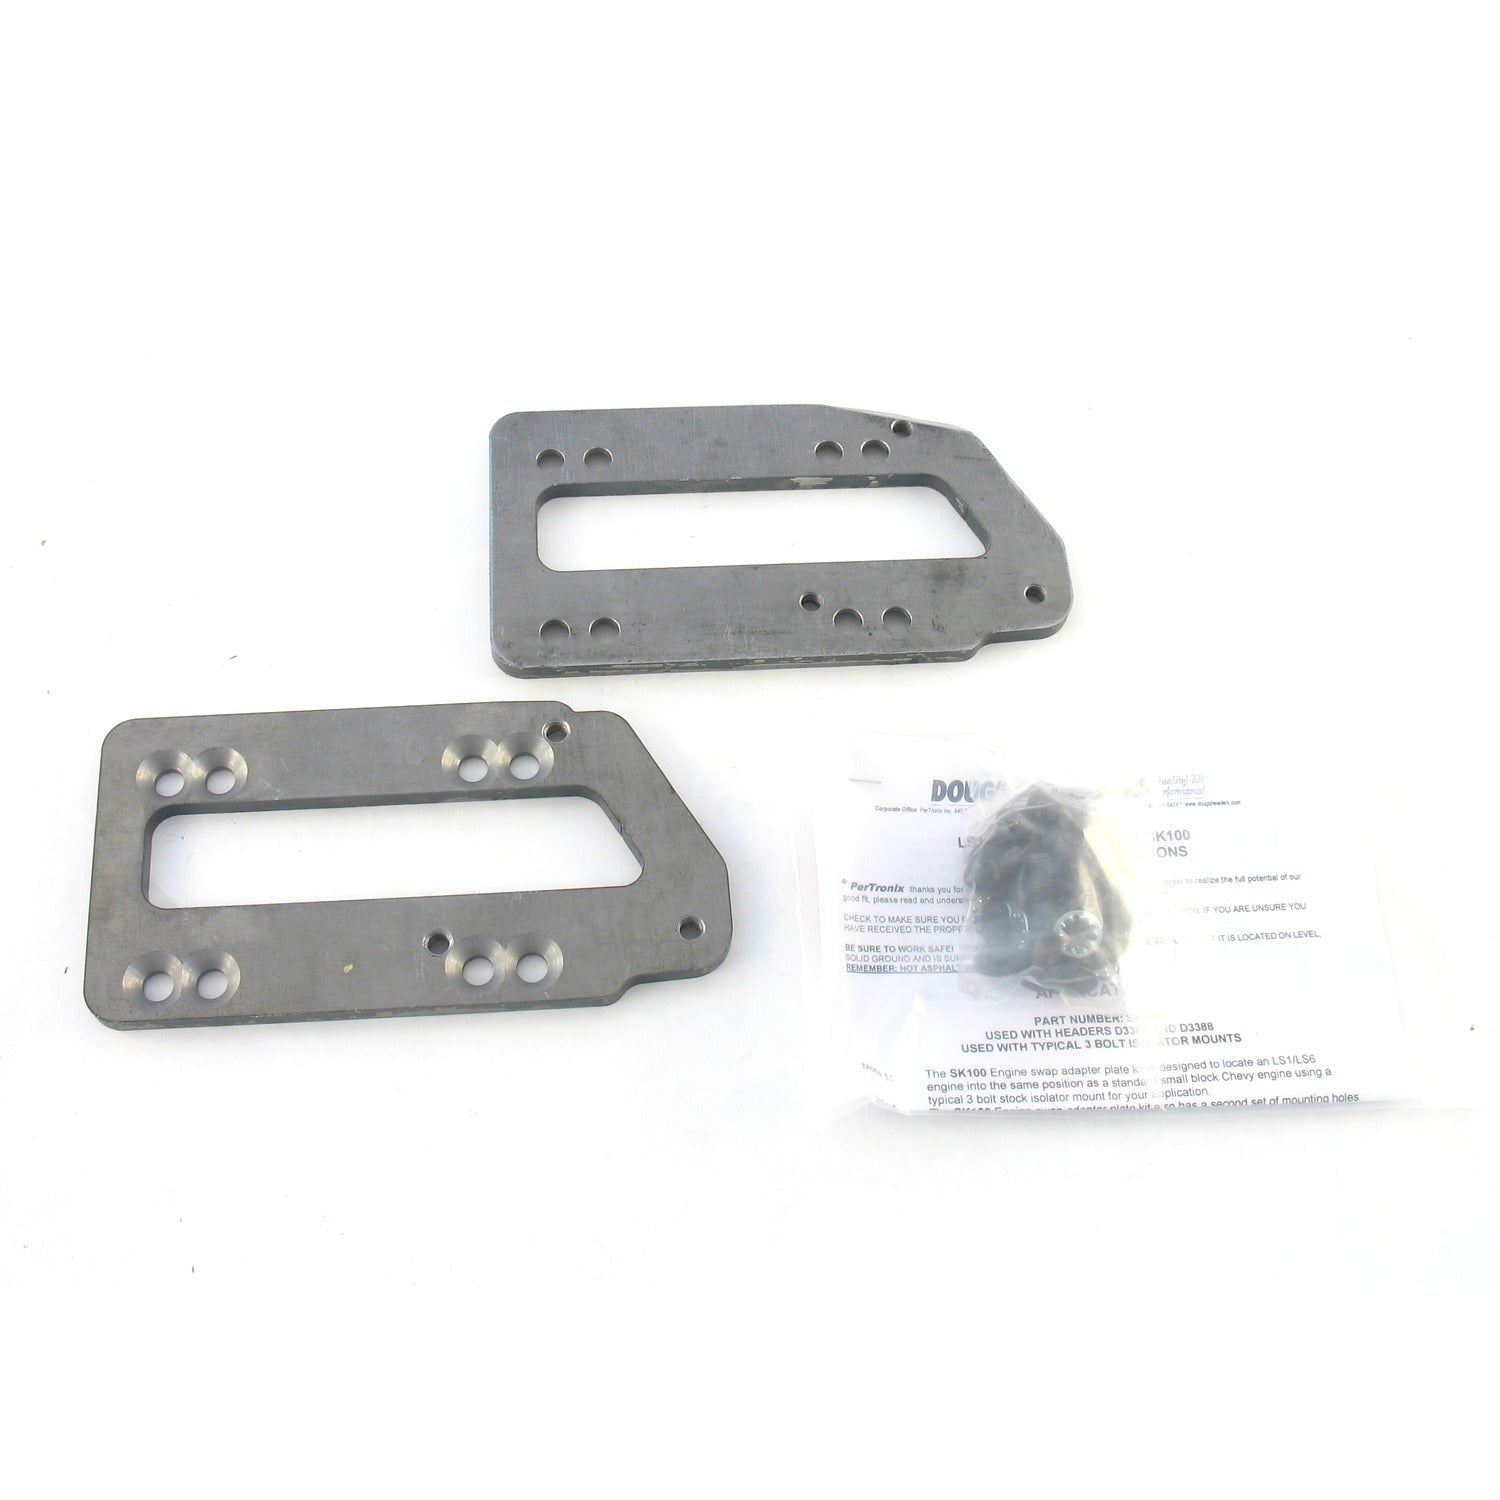 Doug's Headers SK100 Motor Mount Adaptor Plate Kit for LS1/LS6 GM engines into 67-81 Camaro 64-72 Chevelle